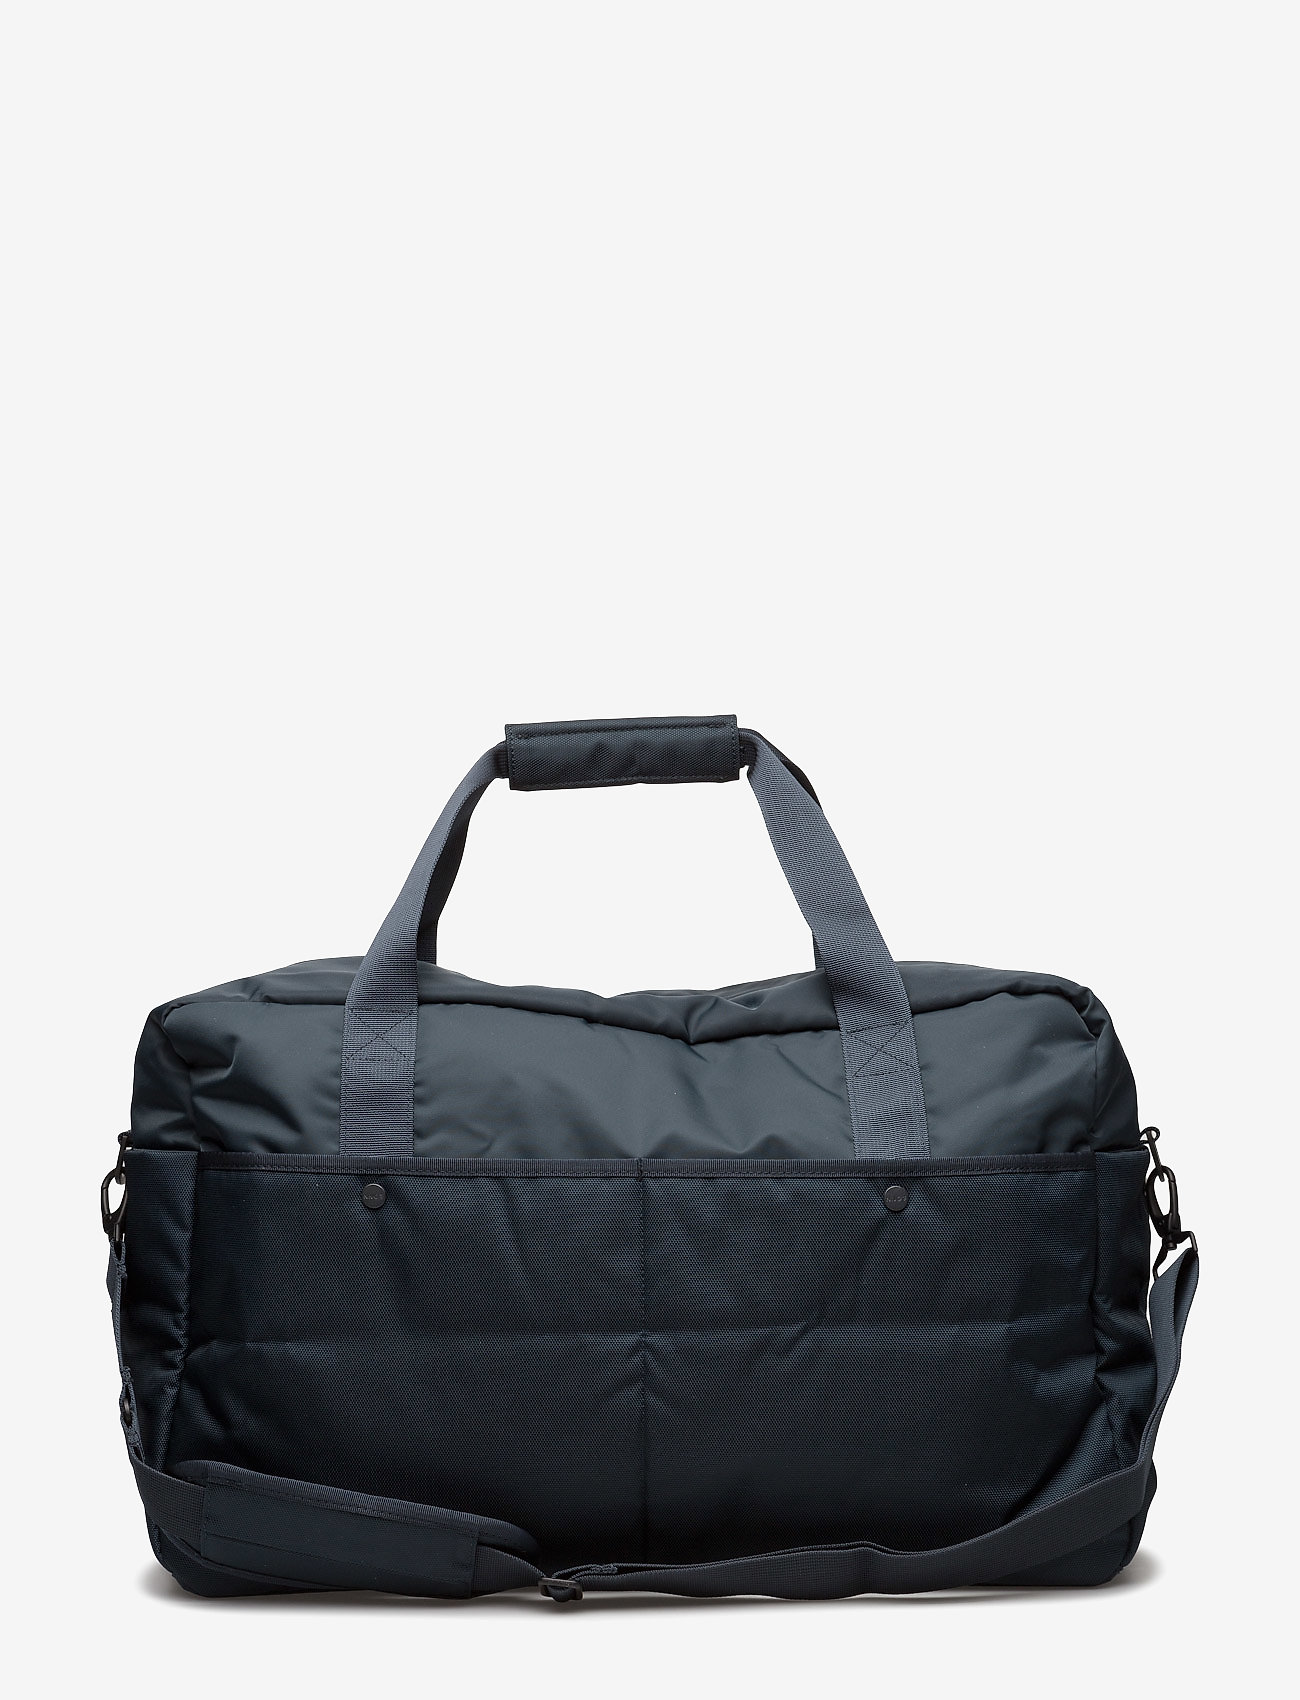 NN07 - Weekend bag 9079 - weekendtasker - navy blue - 0